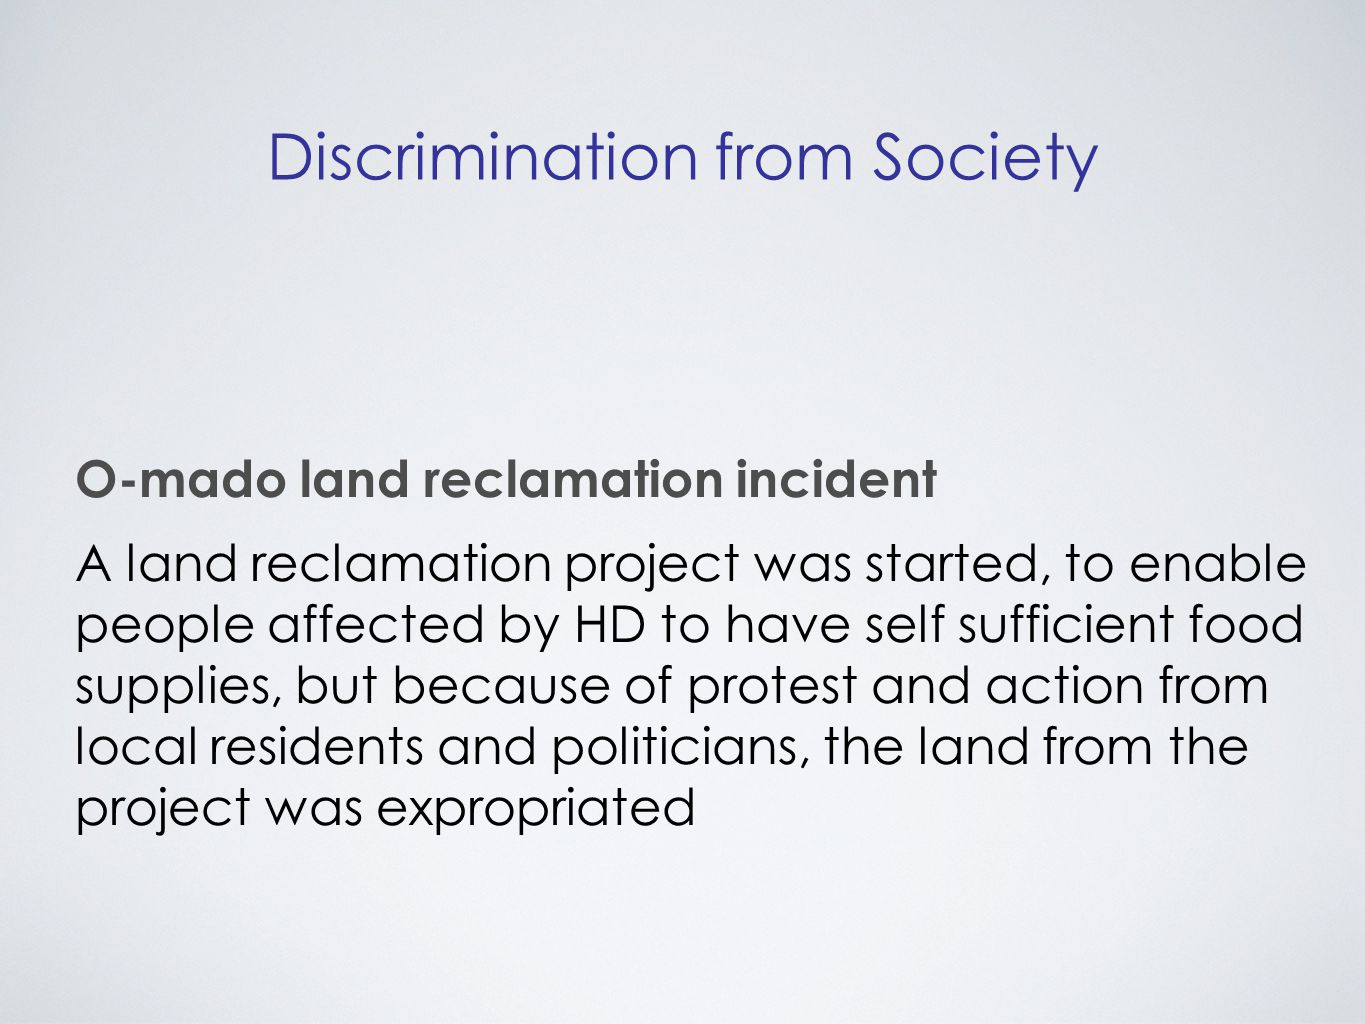 Discrimination from Society O-mado land reclamation incident A land reclamation project was started, to enable people affected by HD to have self sufficient food supplies, but because of protest and action from local residents and politicians, the land from the project was expropriated